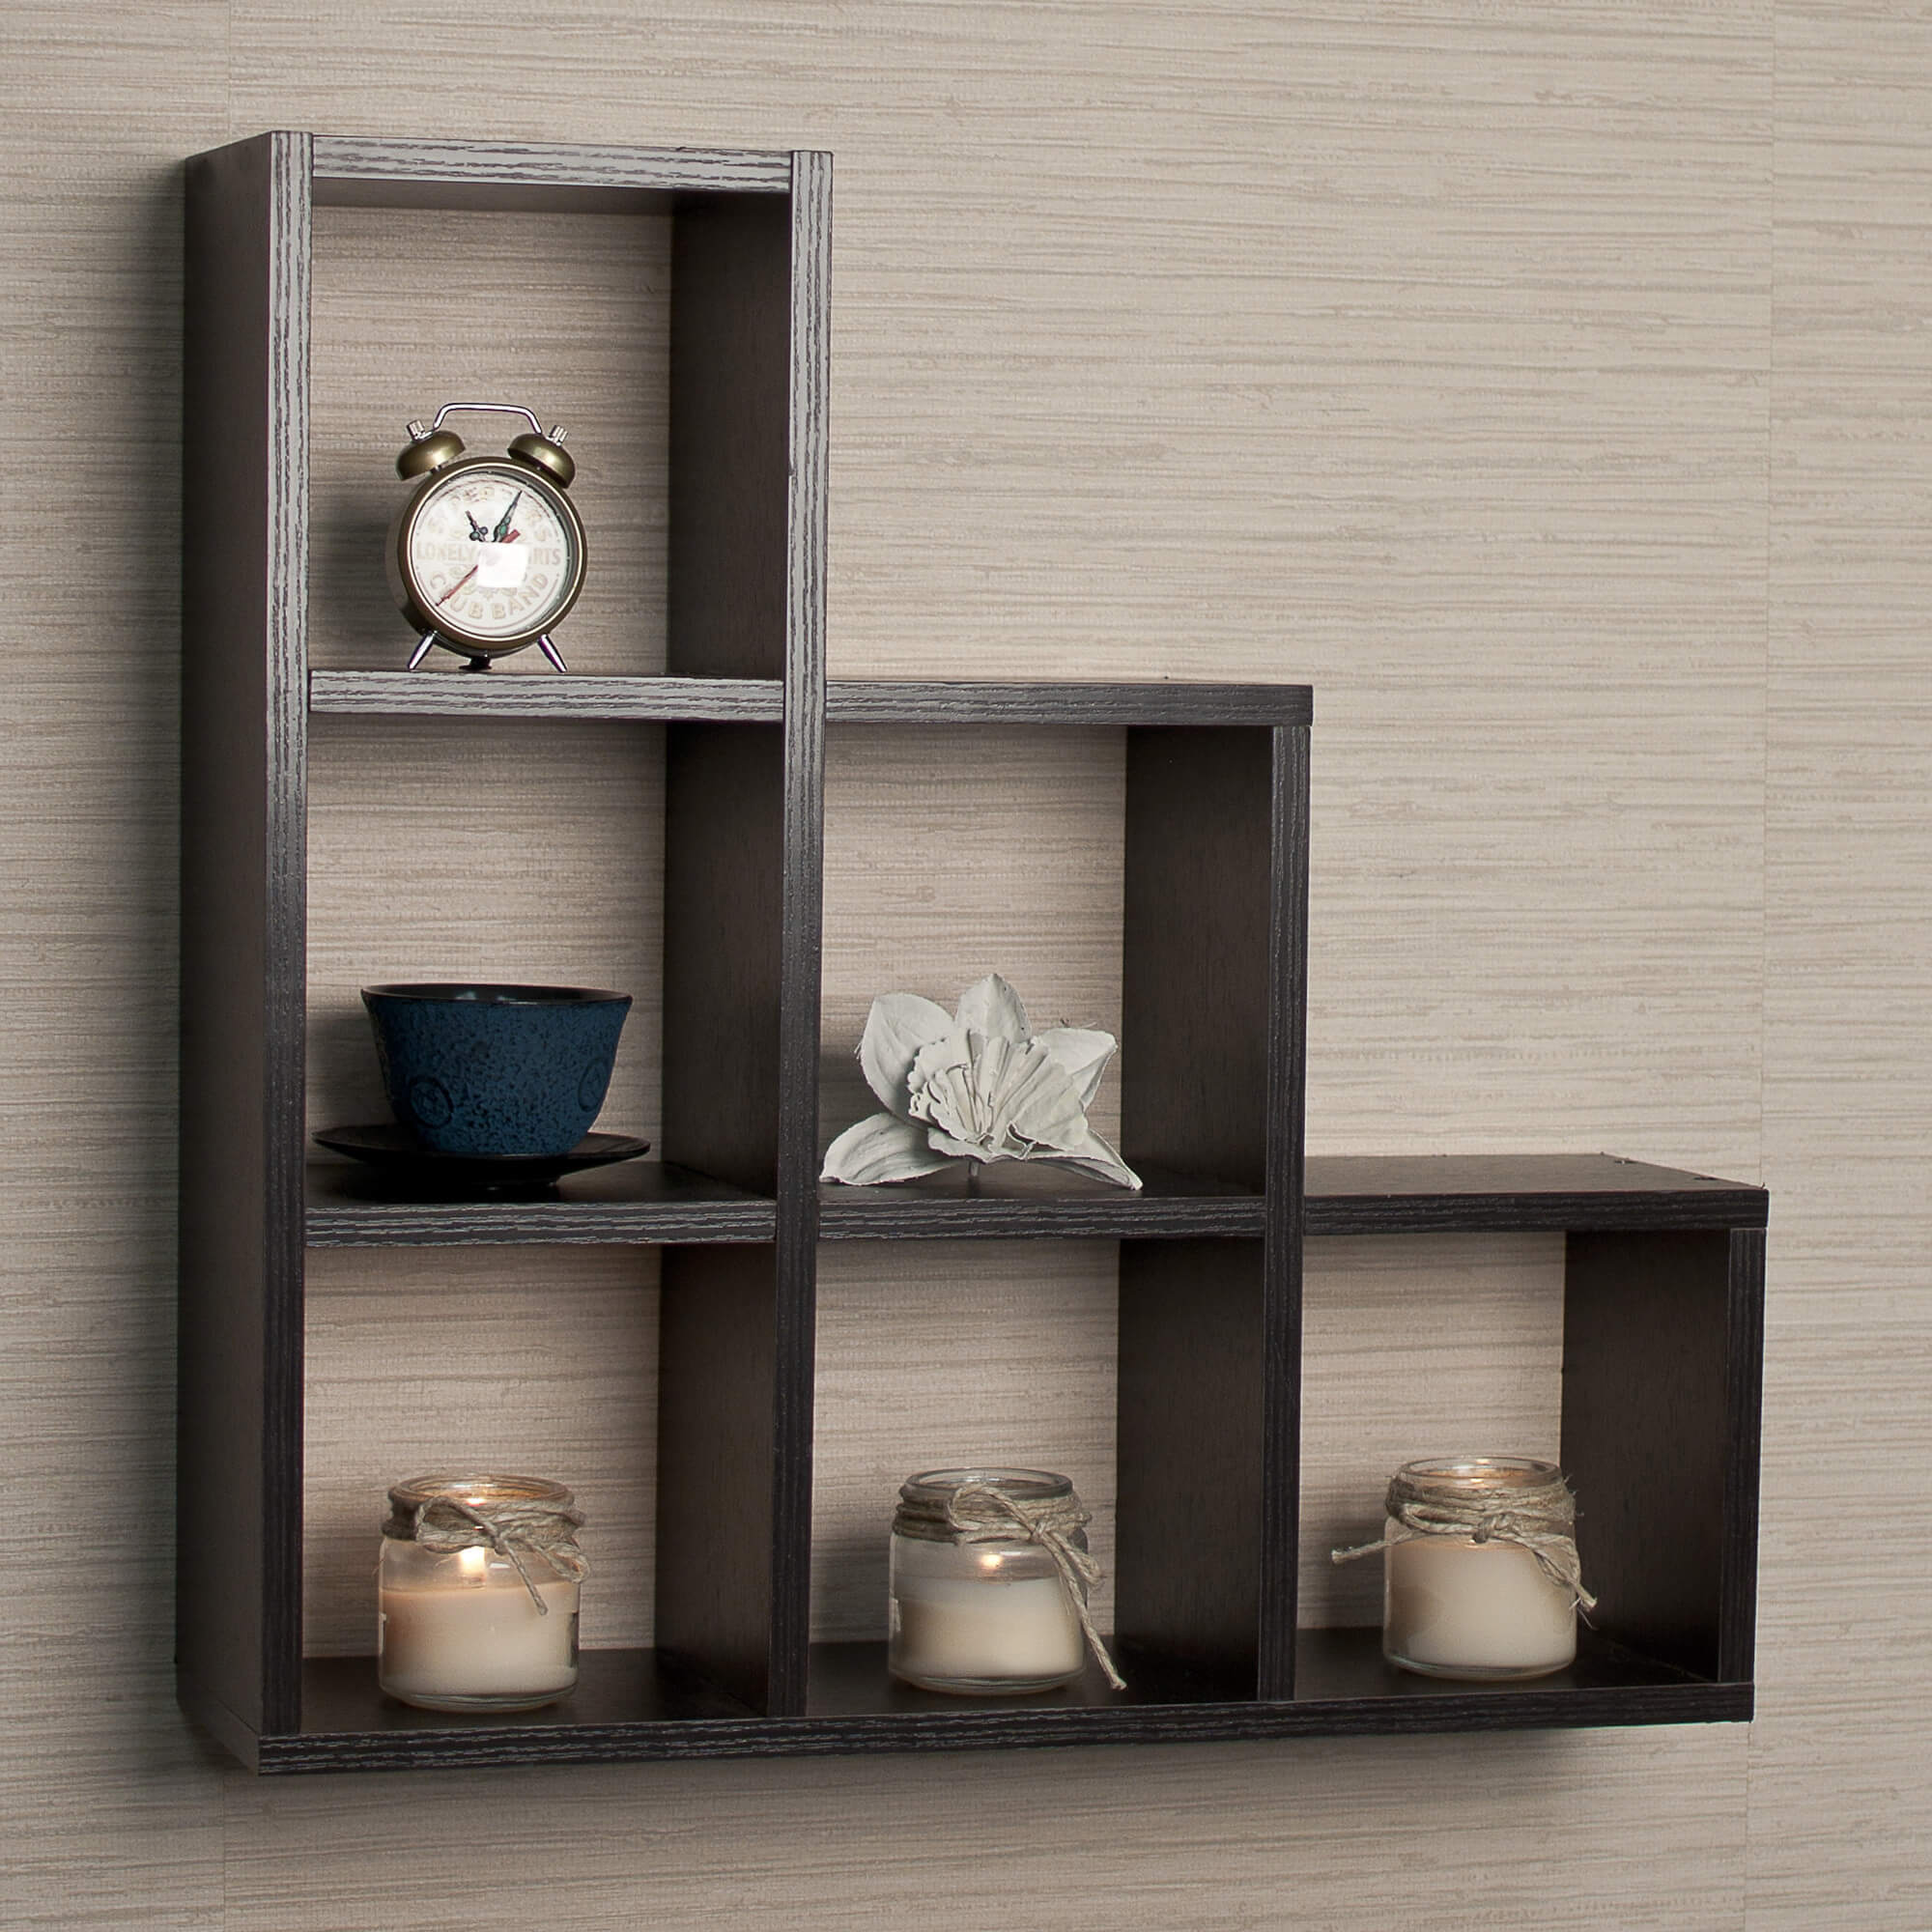 3way wall mounted cube shelf